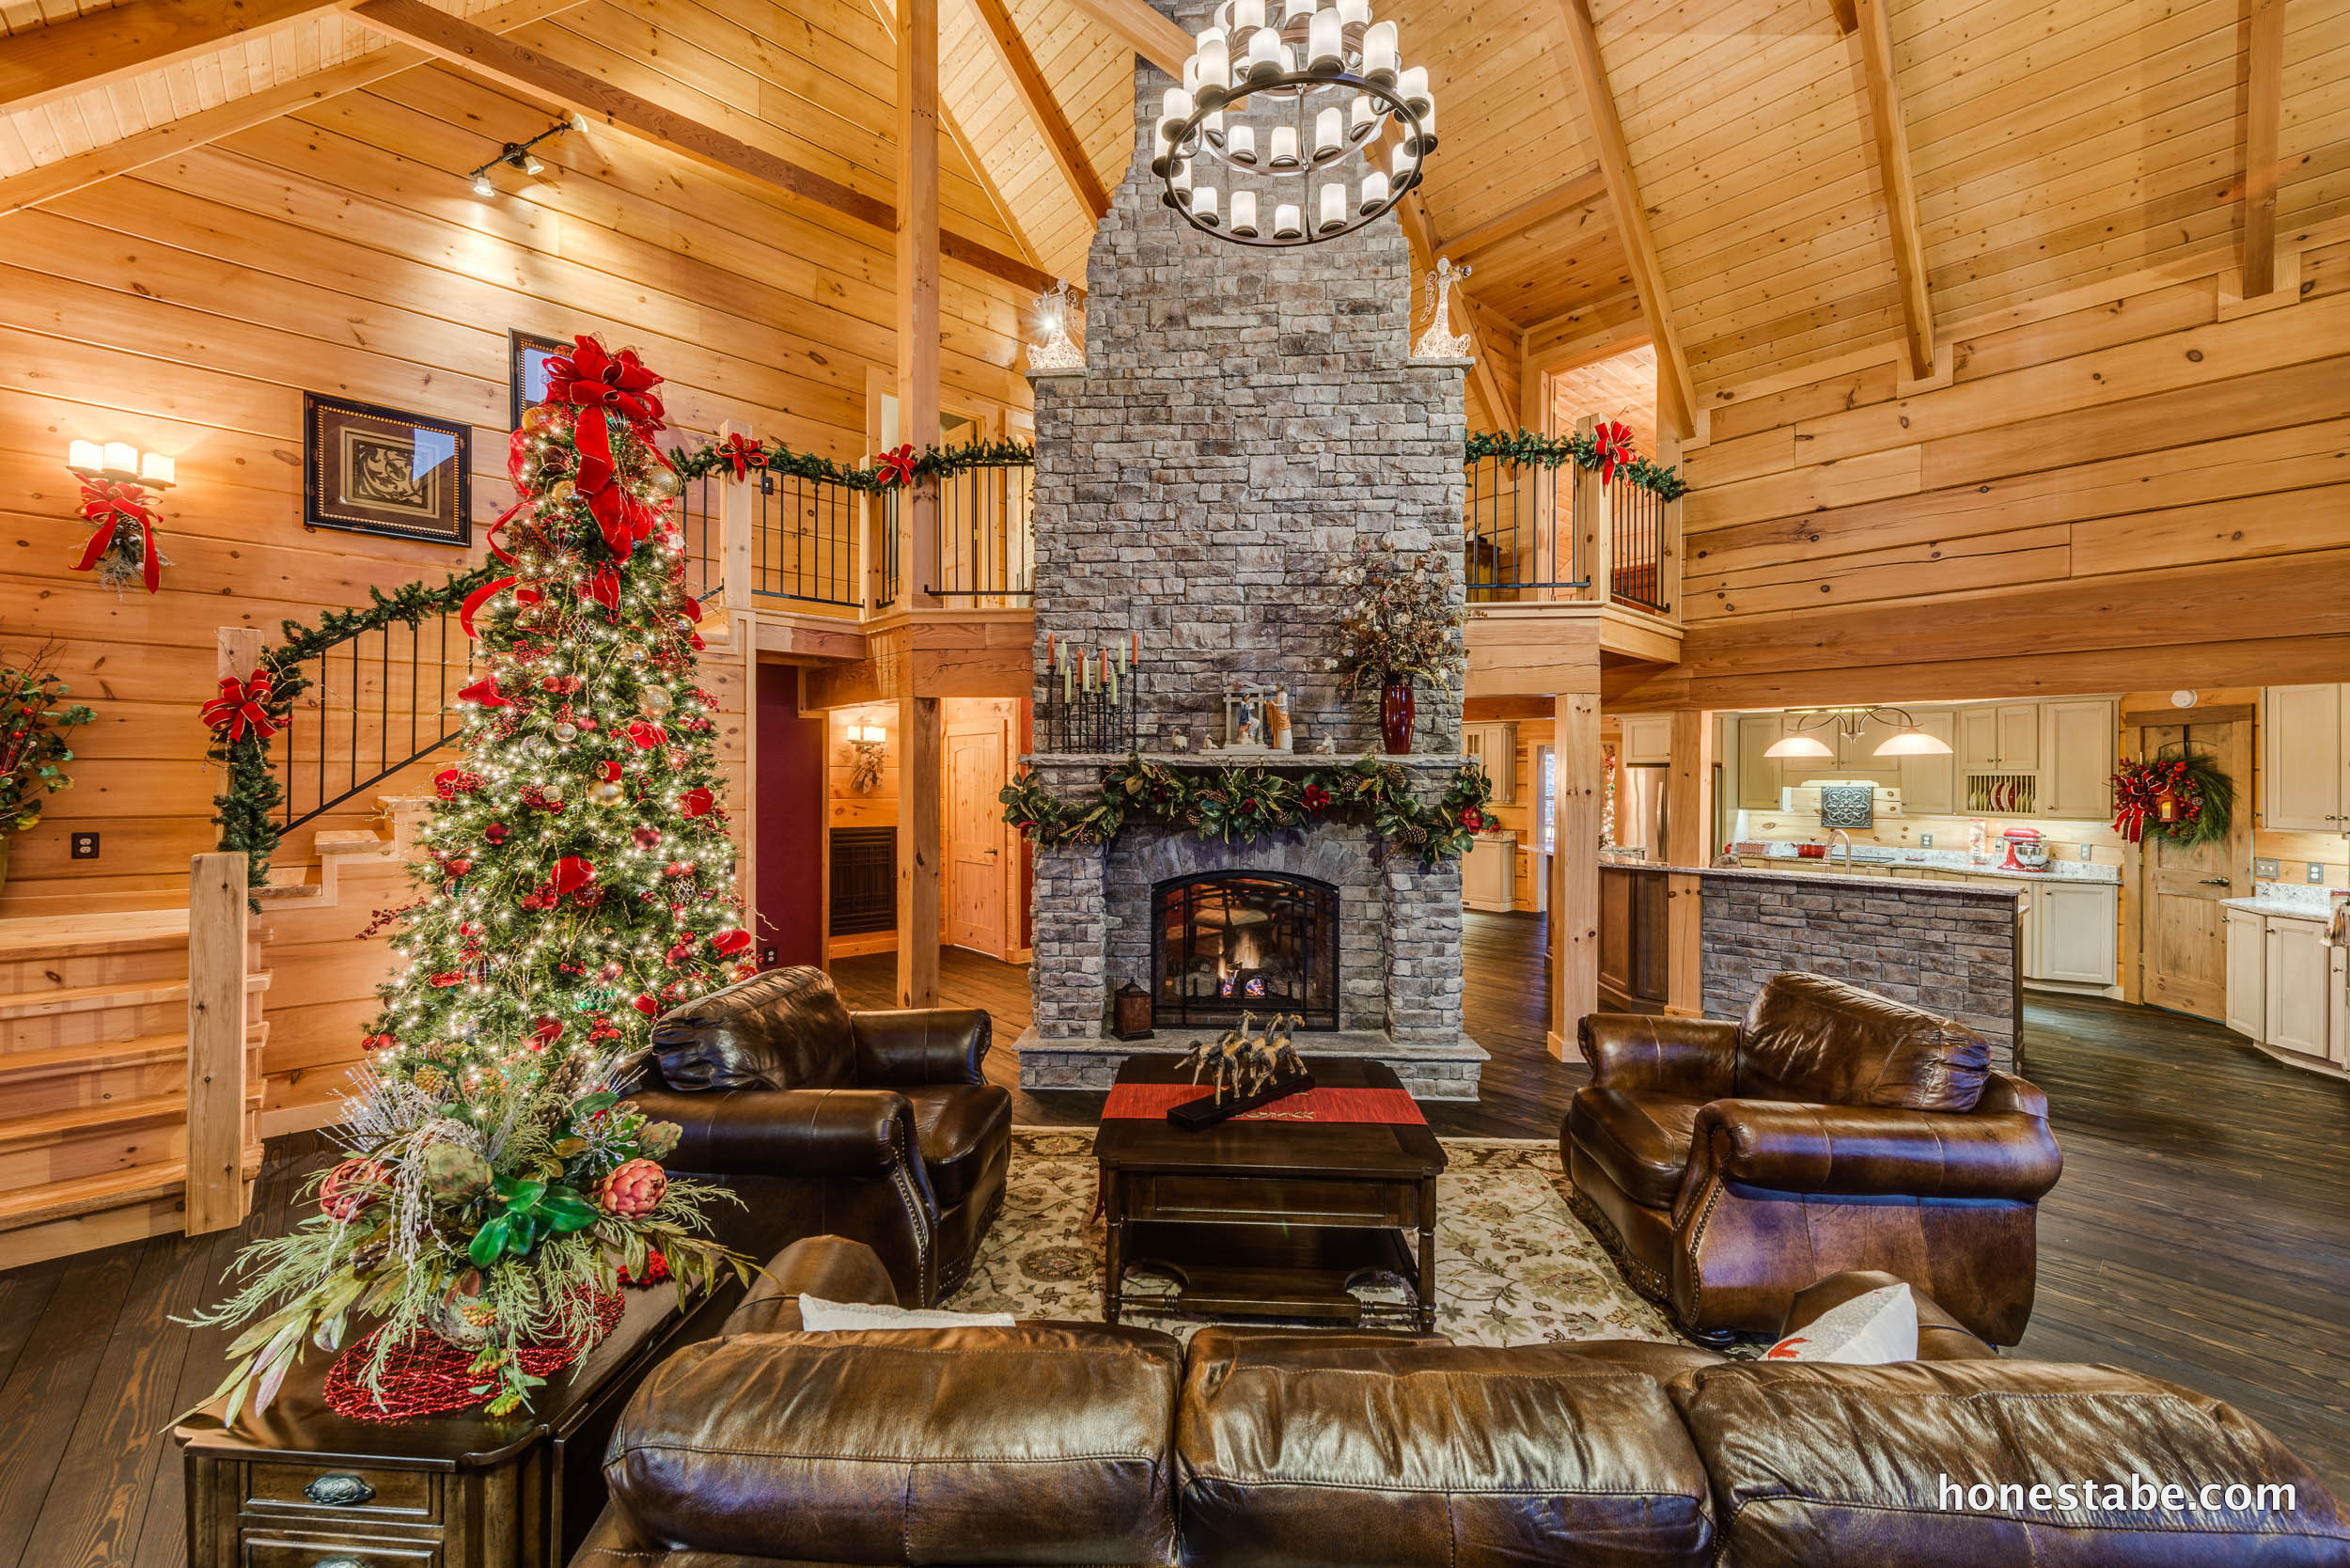 Crossville A Christmas Tour Of Log And Timber Frame Homes Hosted By Honest Abe